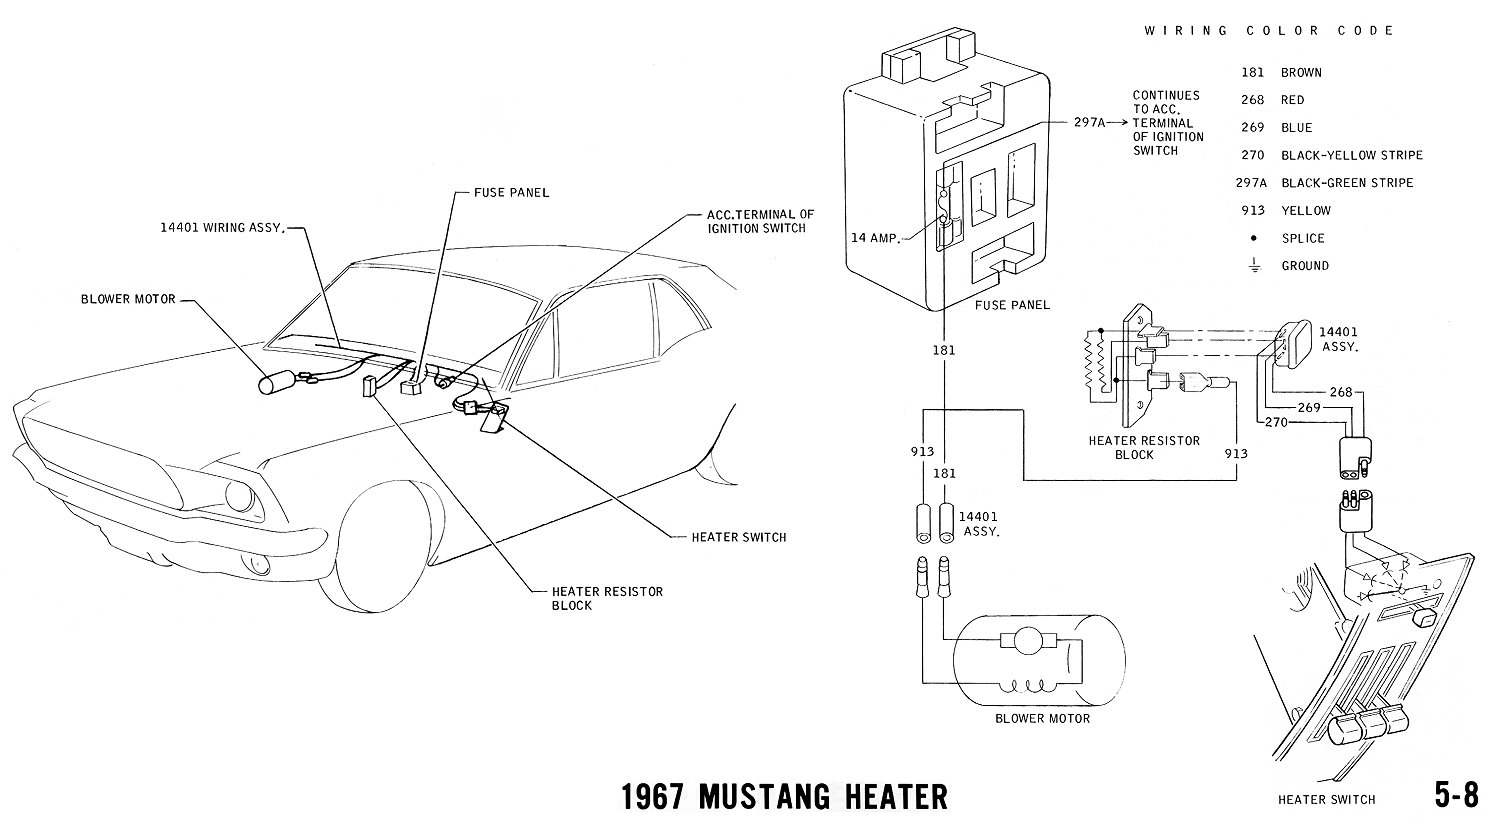 67heater 1967 mustang wiring and vacuum diagrams average joe restoration 1965 mustang heater wiring diagram at cos-gaming.co